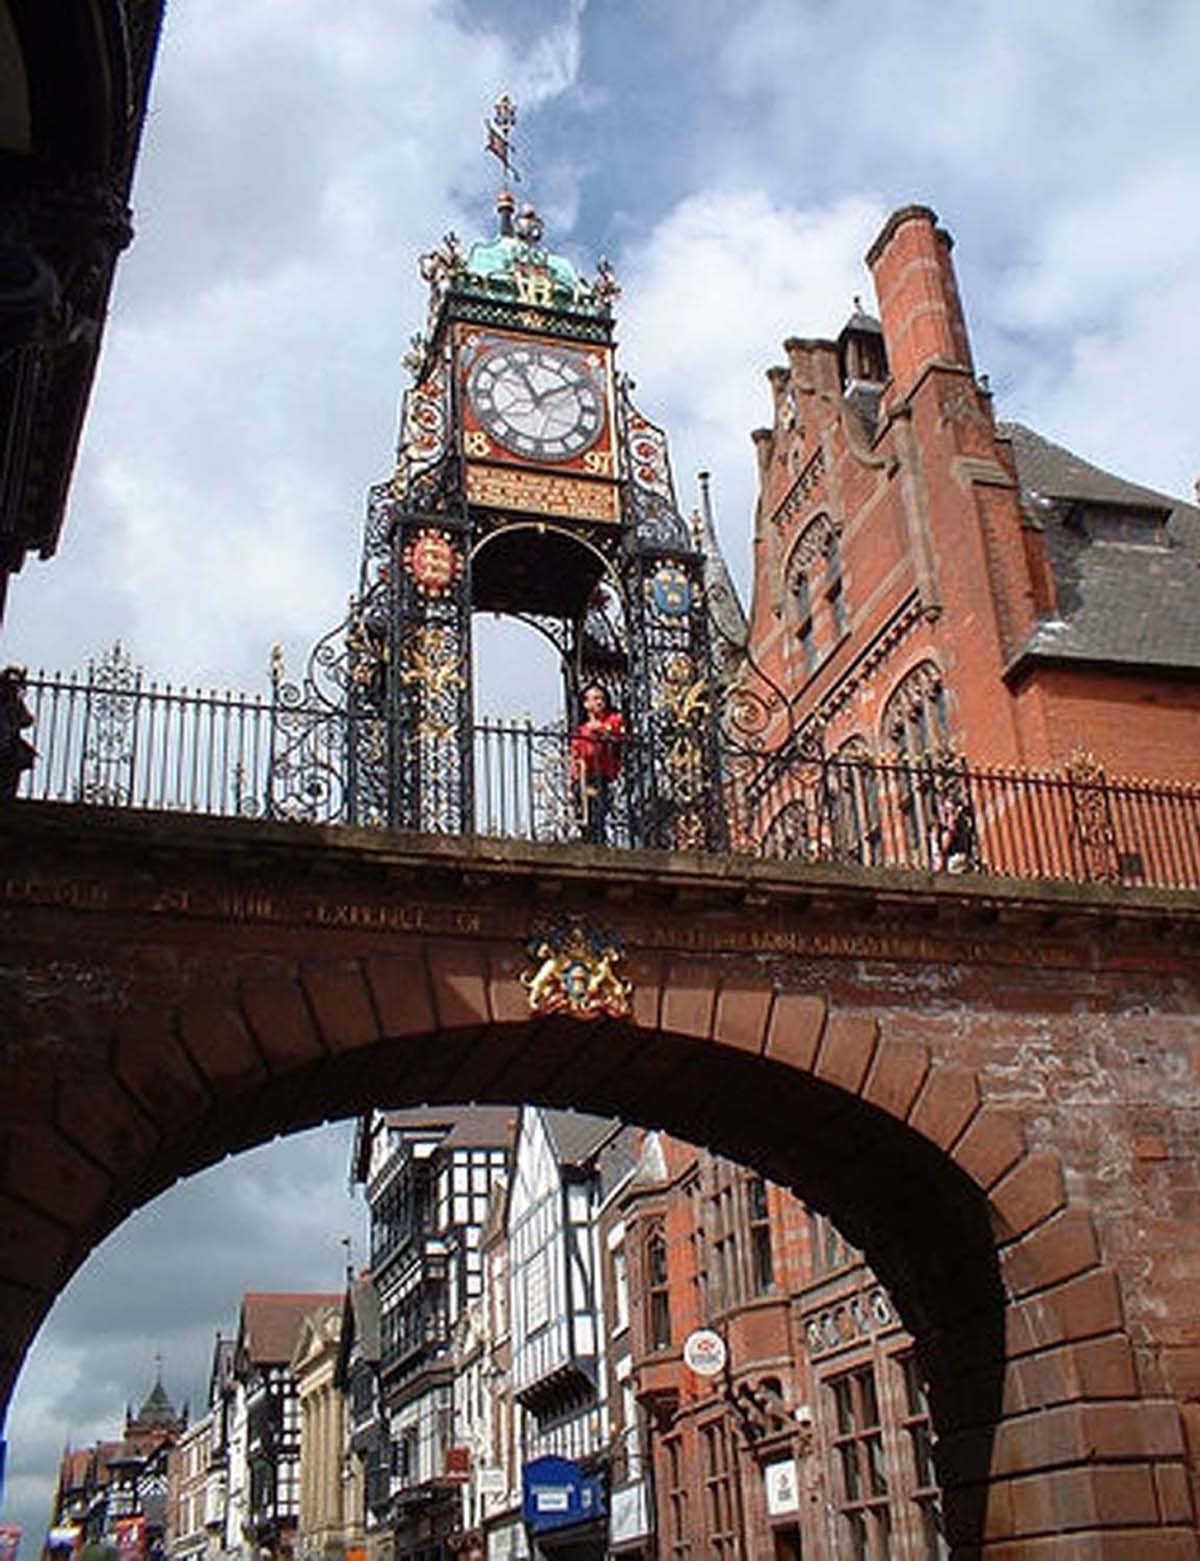 Take a leisurely stroll around Chester's city walls.